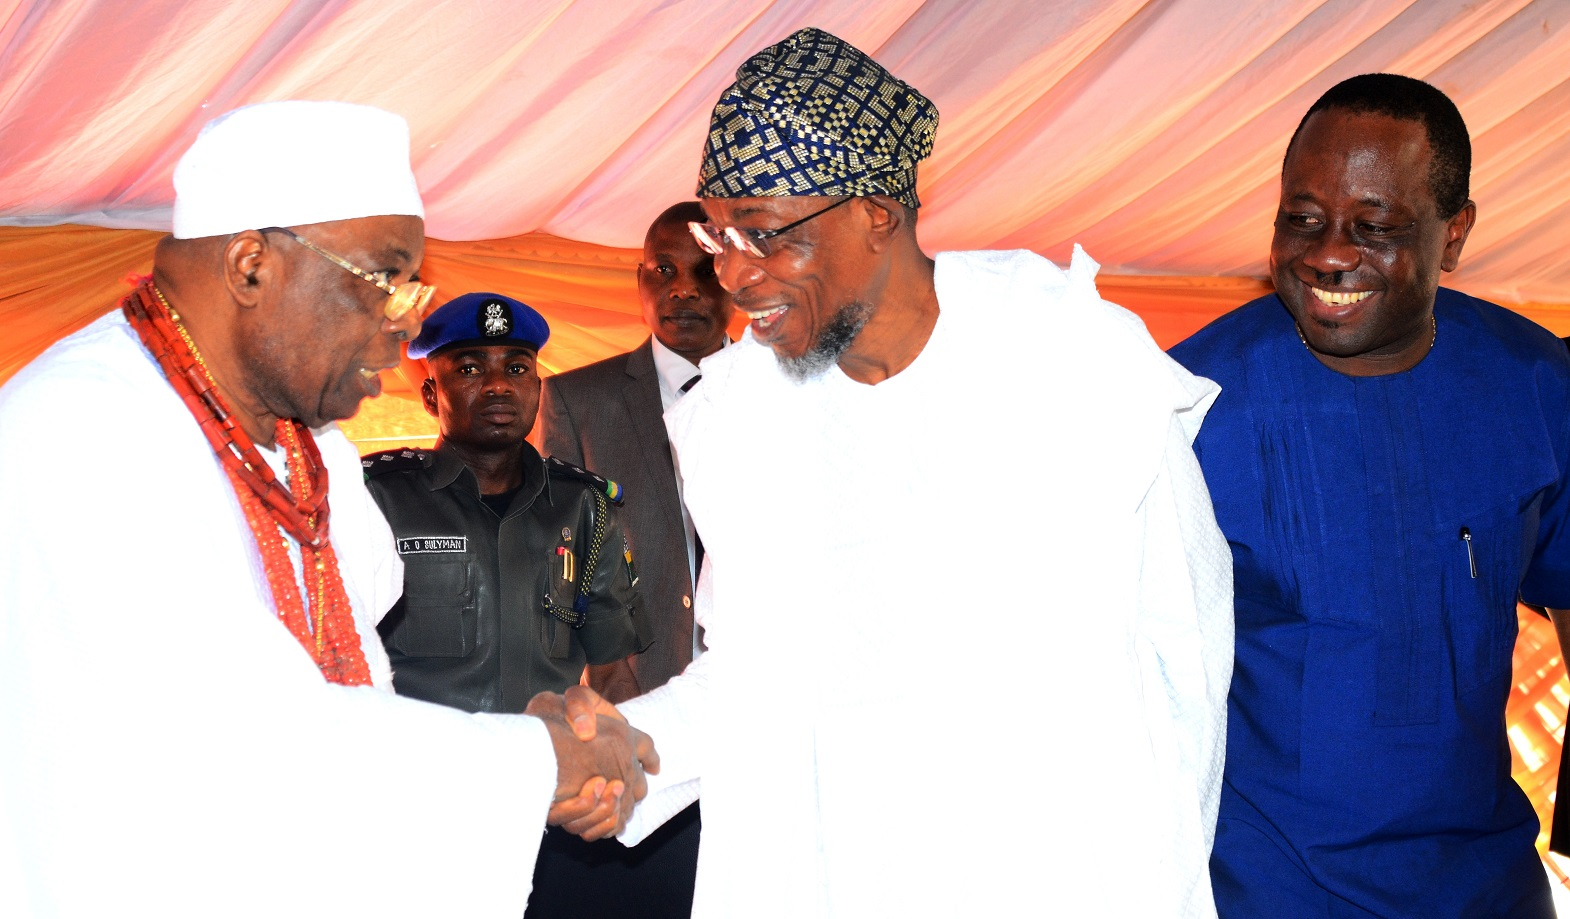 Governor State of Osun, Ogbeni Rauf Aregbesola (middle); Chairman International Breweries Plc Ilesa, Otunba Micheal Daramola (right) and Owo Obokun of Ijesa Land,  Oba (Dr.) Adekunle Aromolaran, during the Official Commissioning of the New Effluent Treatment Plant and Water Pipeline, at the Company's premises, Ilesa, on Tuesday 8/12/2015.